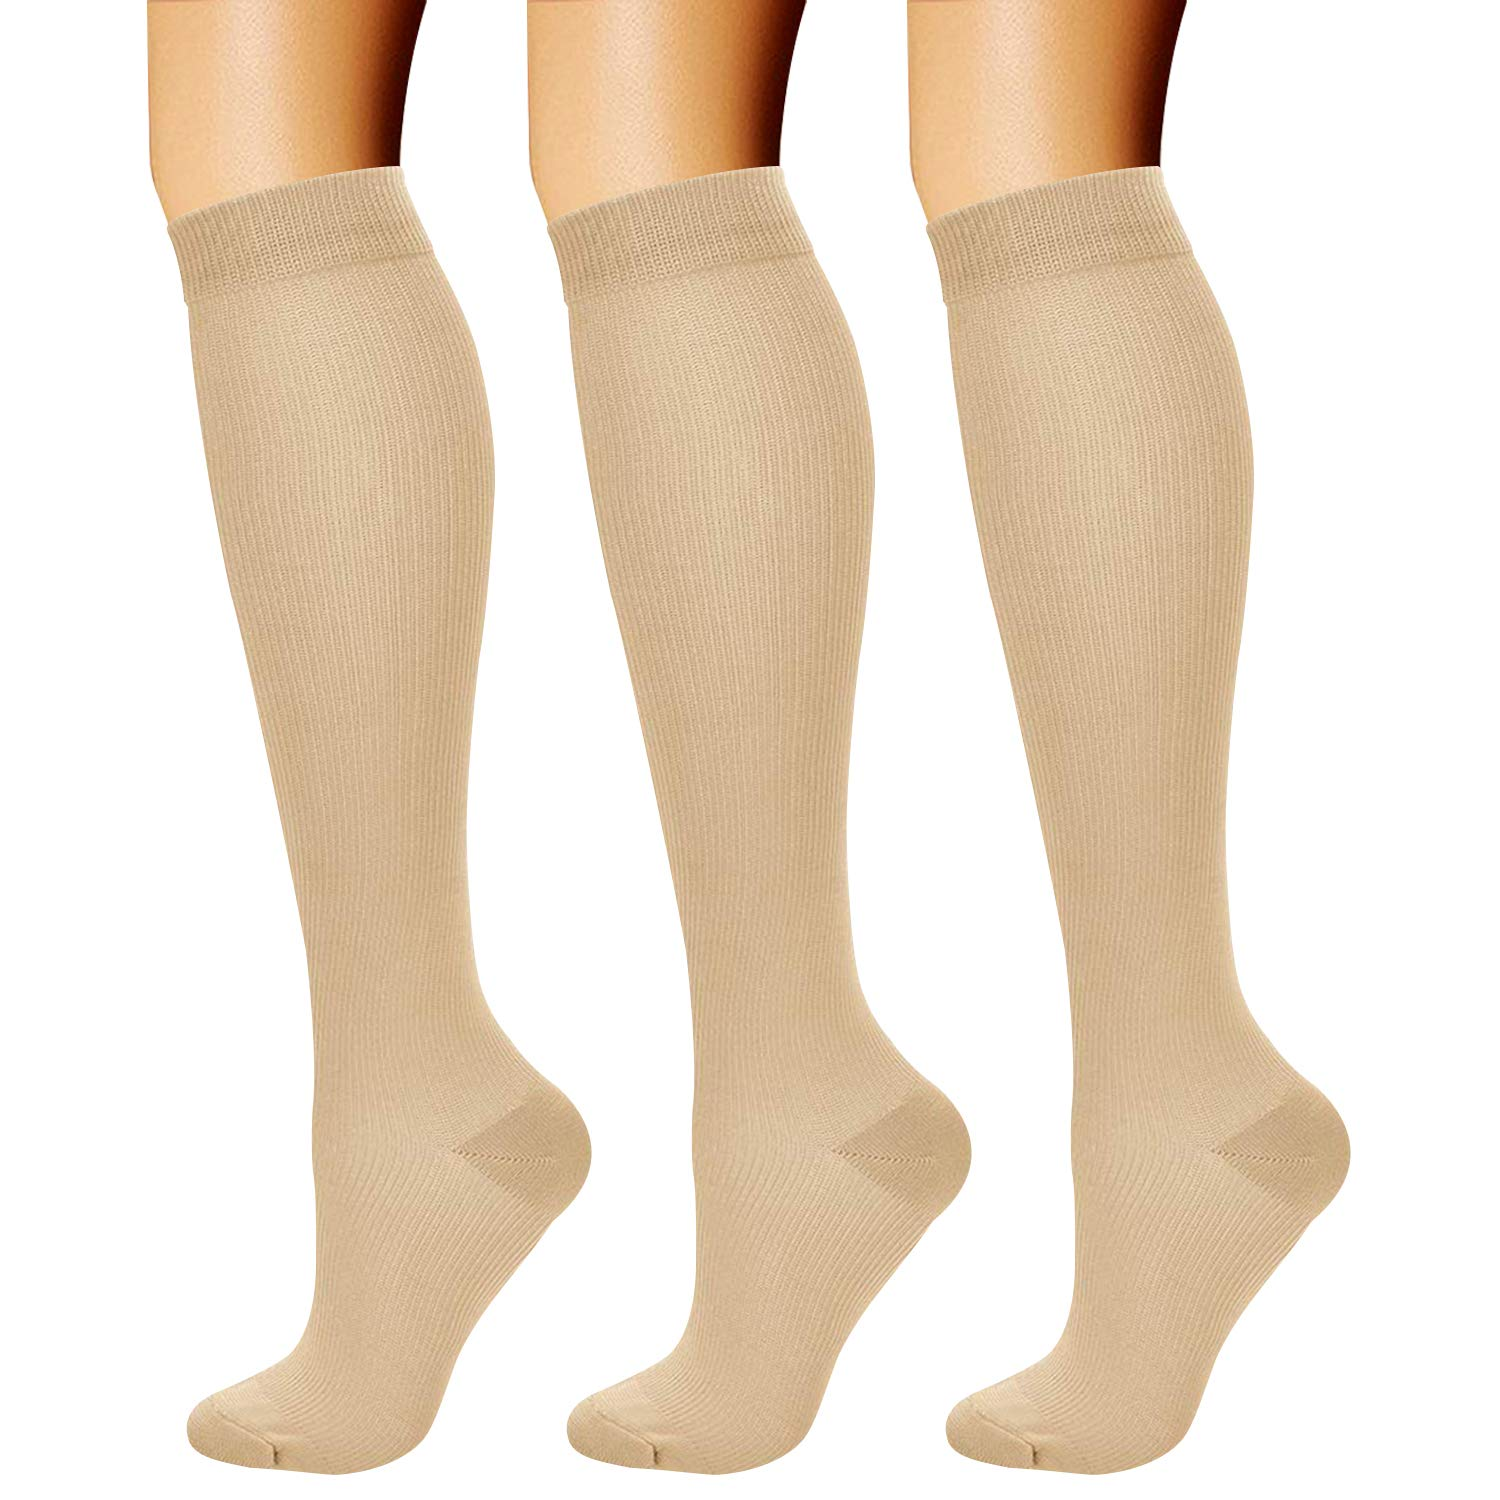 CHARMKING Compression Socks (3 Pairs) 15-20 mmHg is Best Athletic & Medical for Men & Women, Running, Flight, Travel, Nurses, Edema - Boost Performance, Blood Circulation & Recovery (L/XL, Nude) by CHARMKING